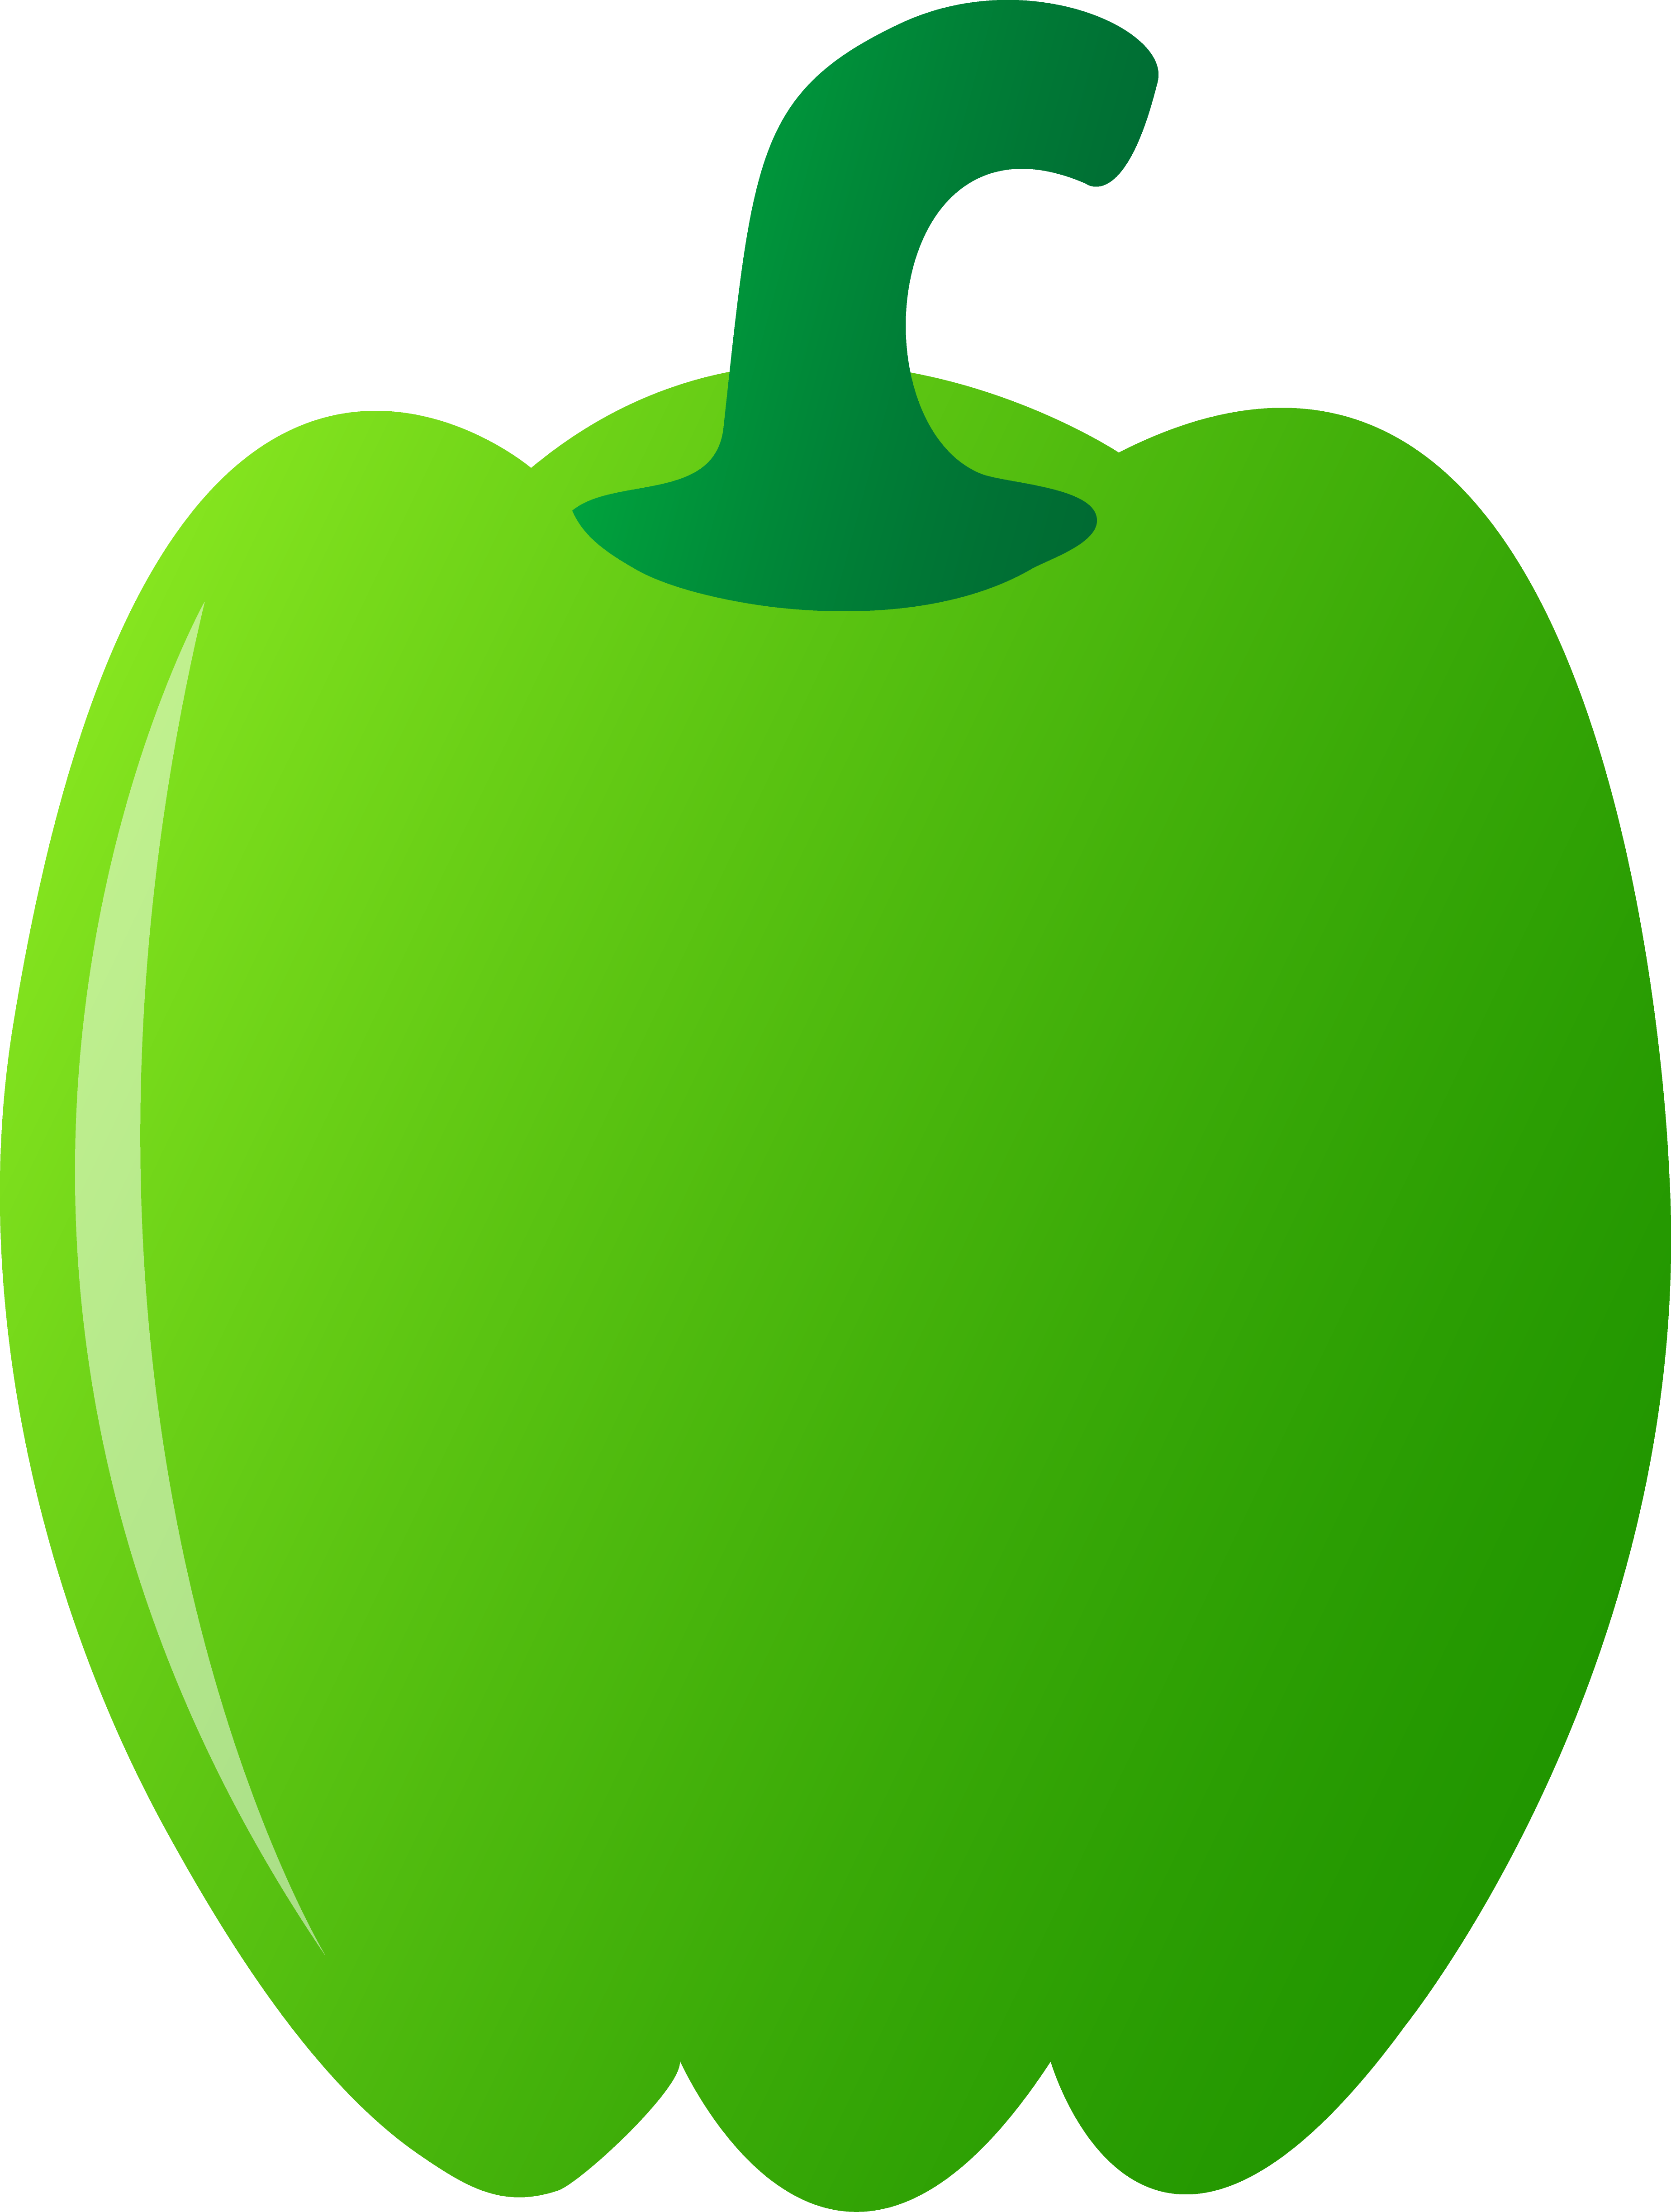 Green clipart #6, Download drawings